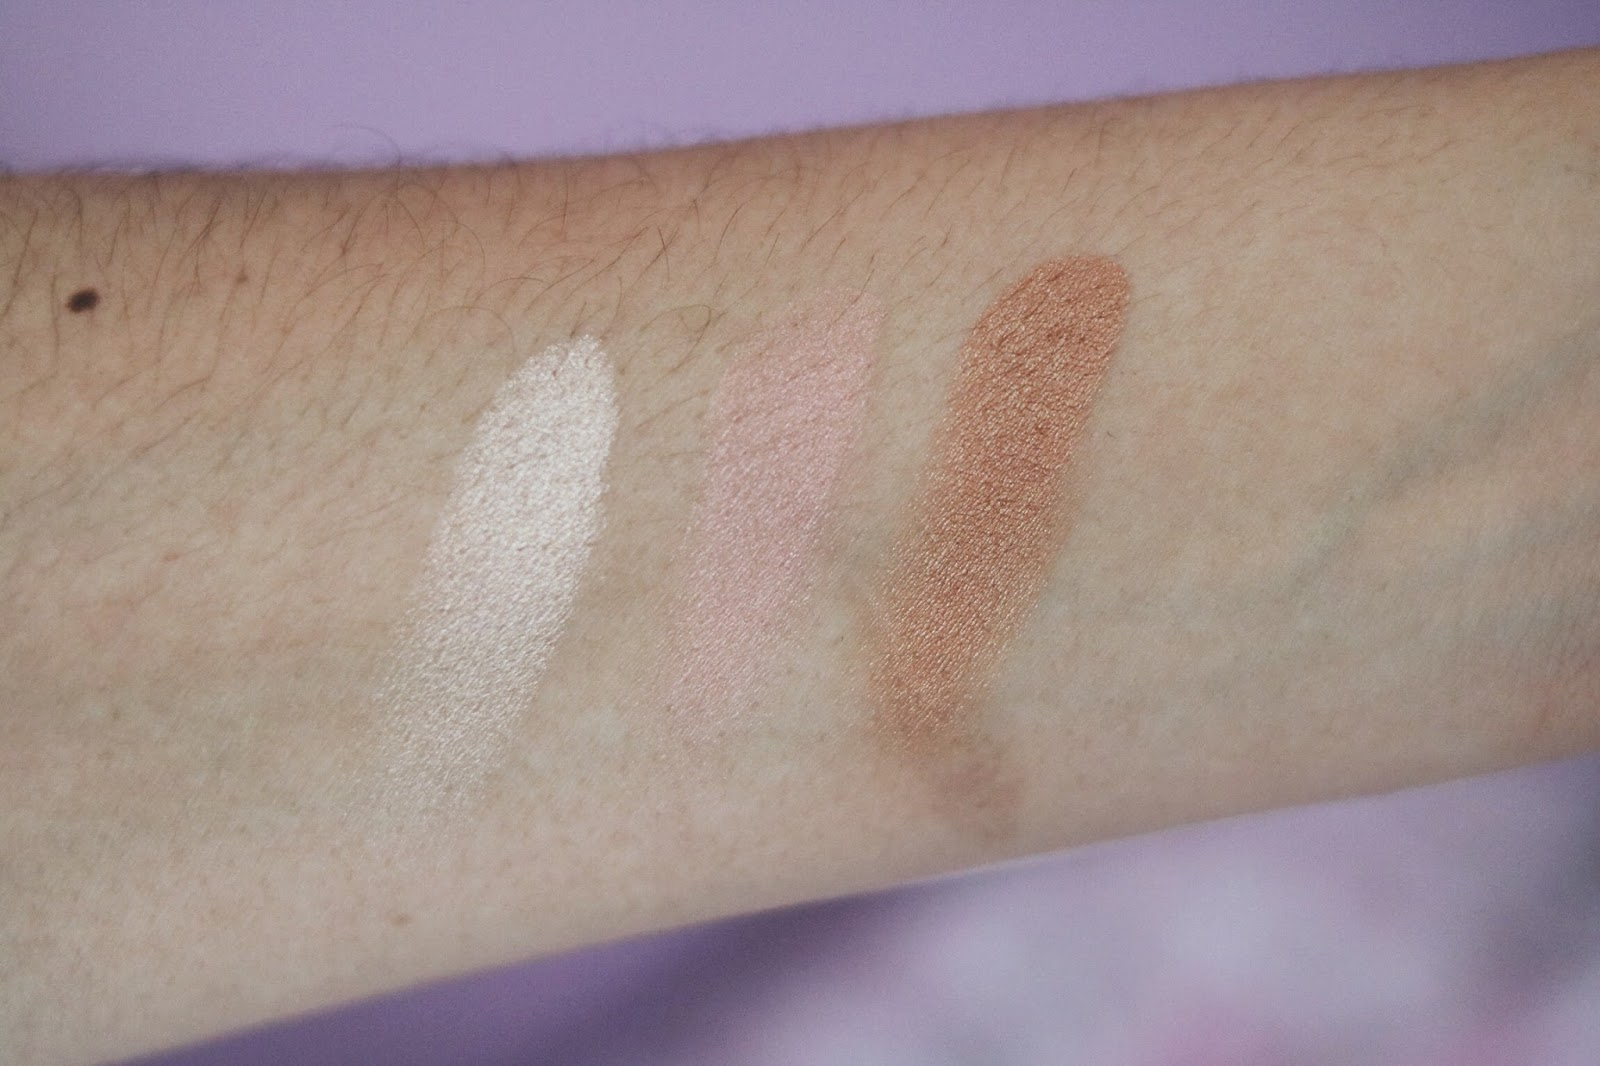 rosemademoiselle,rose mademoiselle, the balm , The manizer sisters palette, Mary-Lou,Betty-lou,Cindy-lou,Highlighter,Bronzeur,Blush,Pin-Up,Paris,blog beauté